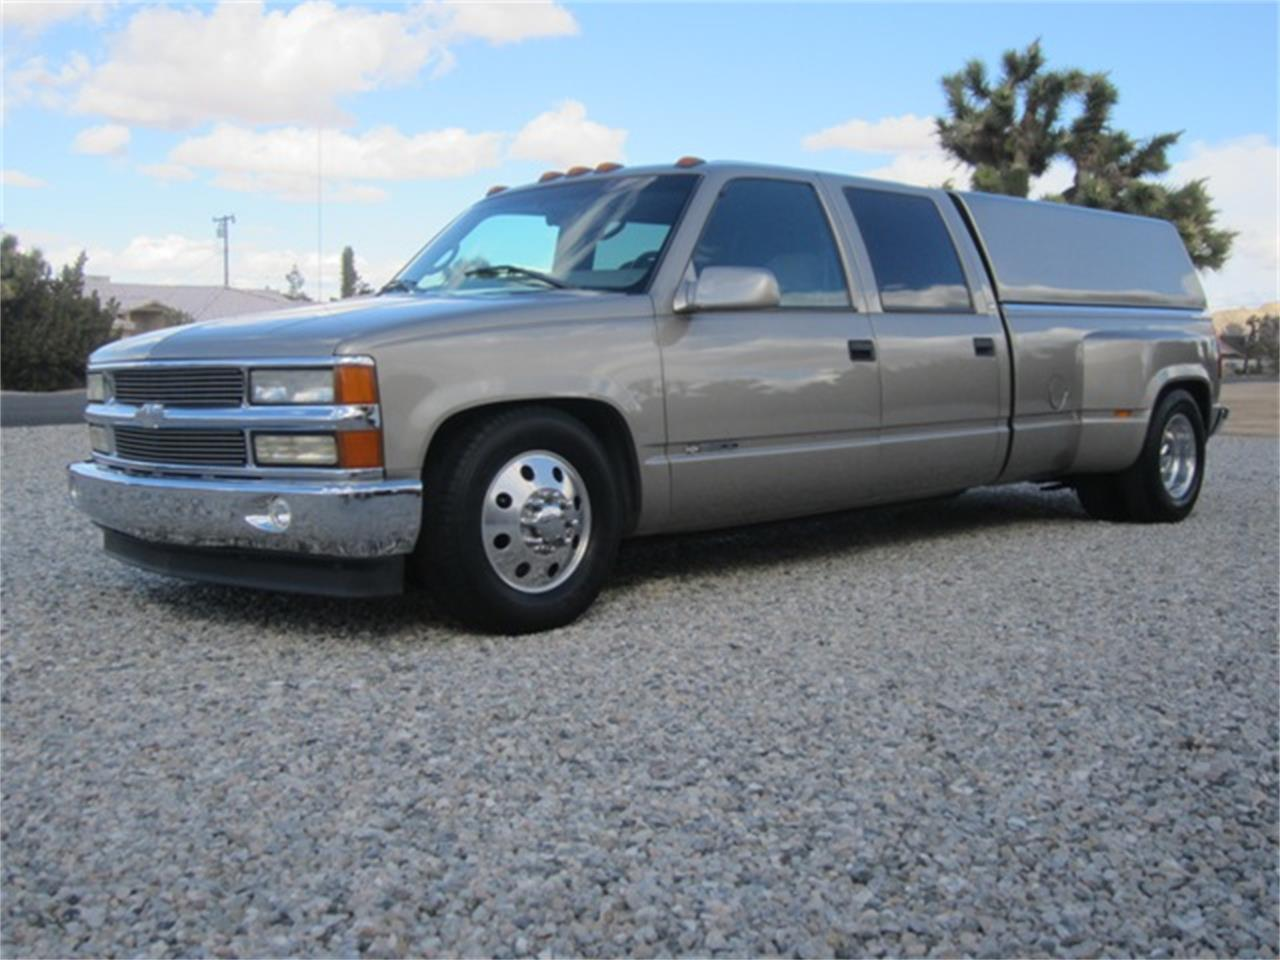 1999 Chevrolet 3500 Crew Cab Dually For Sale Classiccars